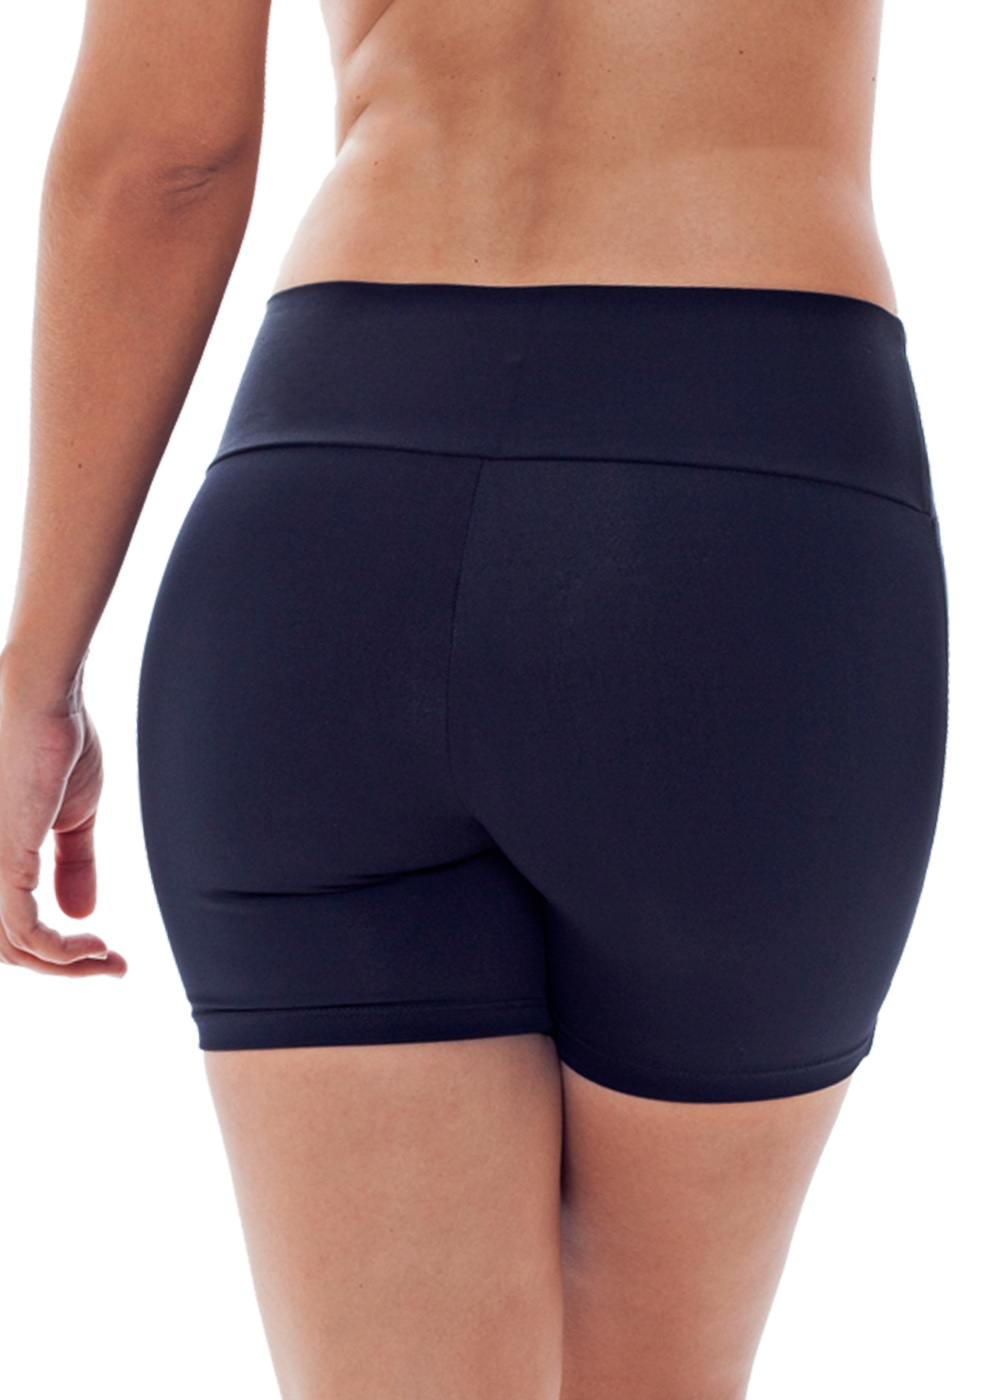 SHORTS LISO FEMININO JUST FIT - PRETO